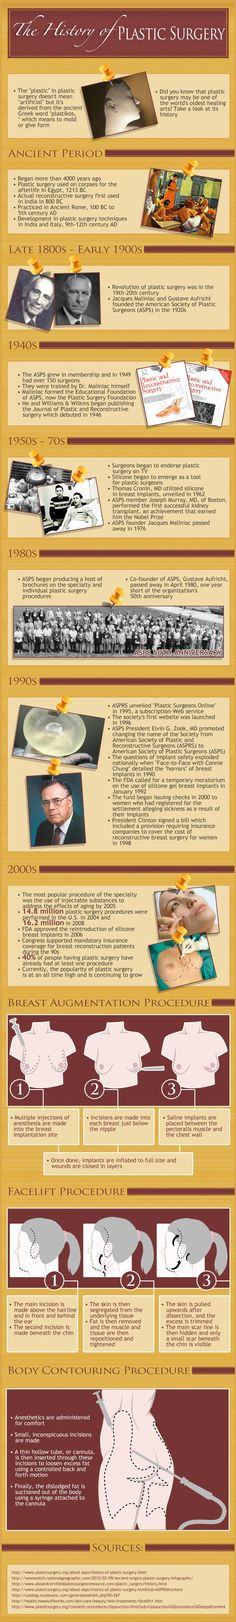 The History of Plastic Surgery [INFOGRAPHIC]